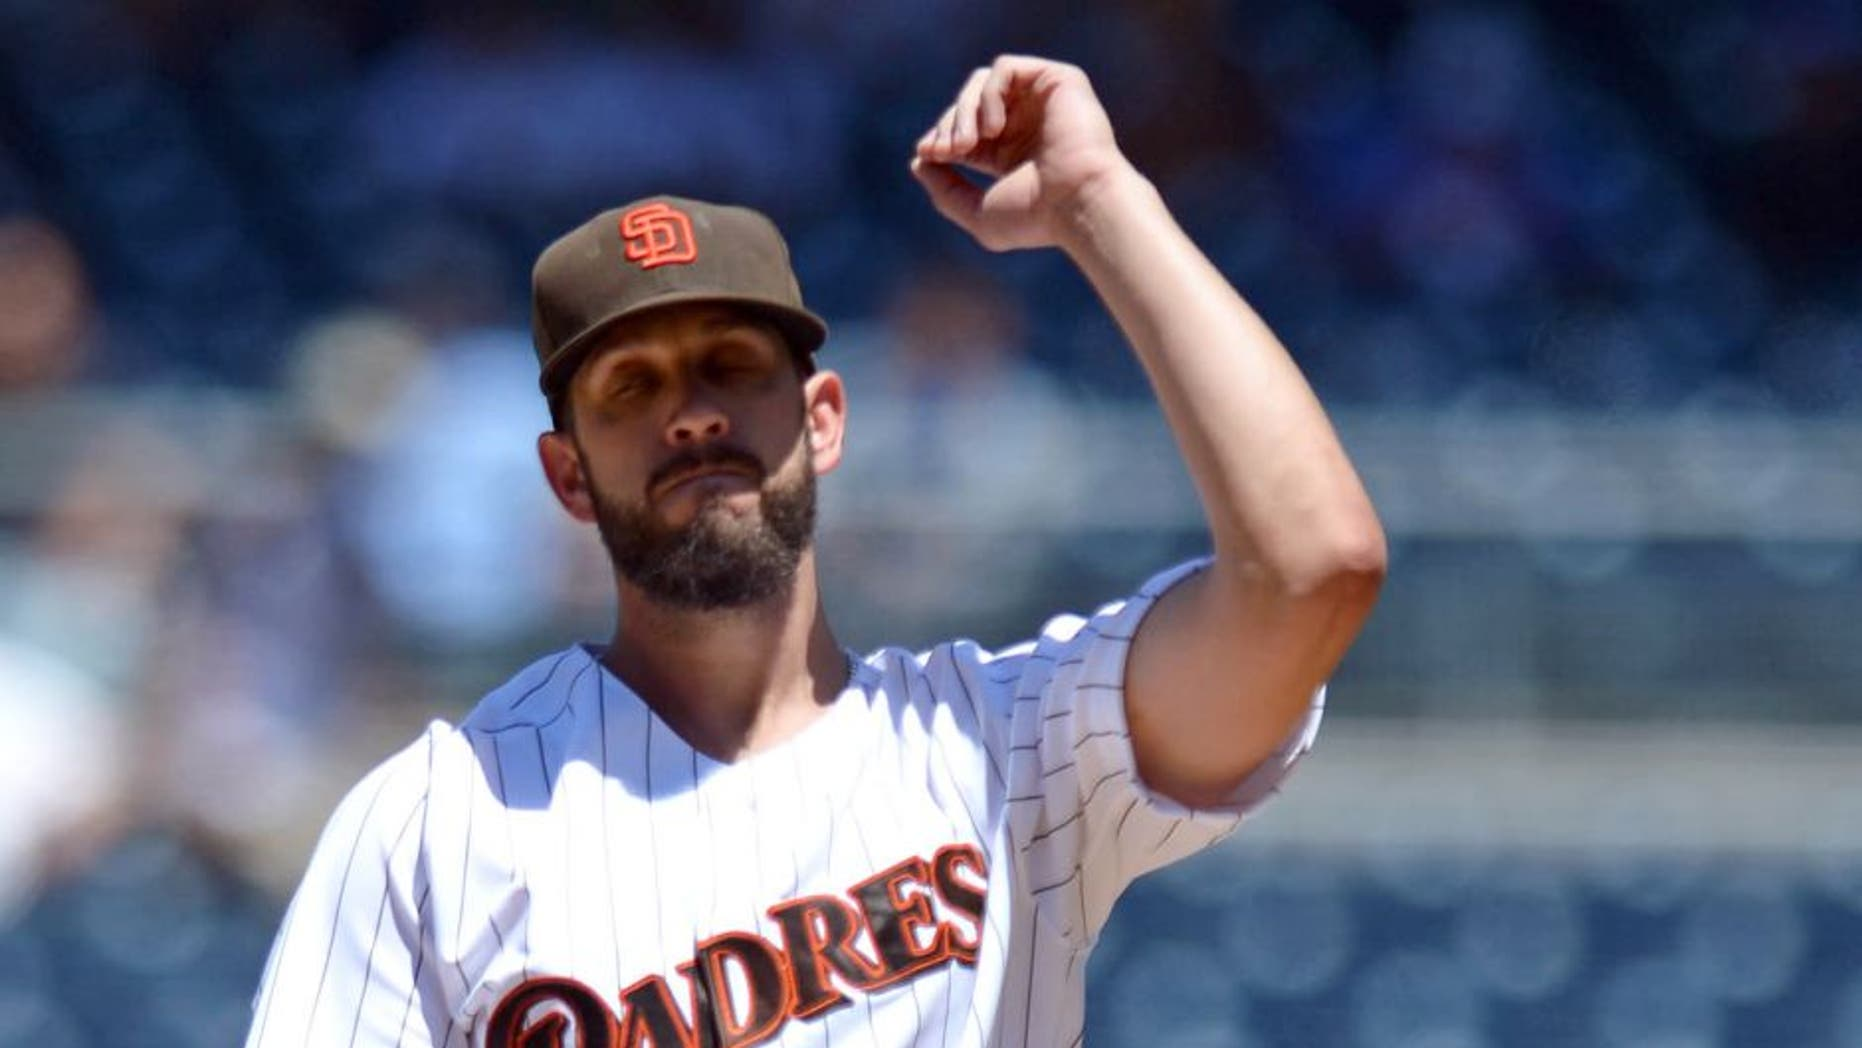 Aug 12, 2015; San Diego, CA, USA; San Diego Padres starting pitcher James Shields (33) reacts after committing a balk that allowed a run against the Cincinnati Reds during the third inning at Petco Park. Mandatory Credit: Jake Roth-USA TODAY Sports